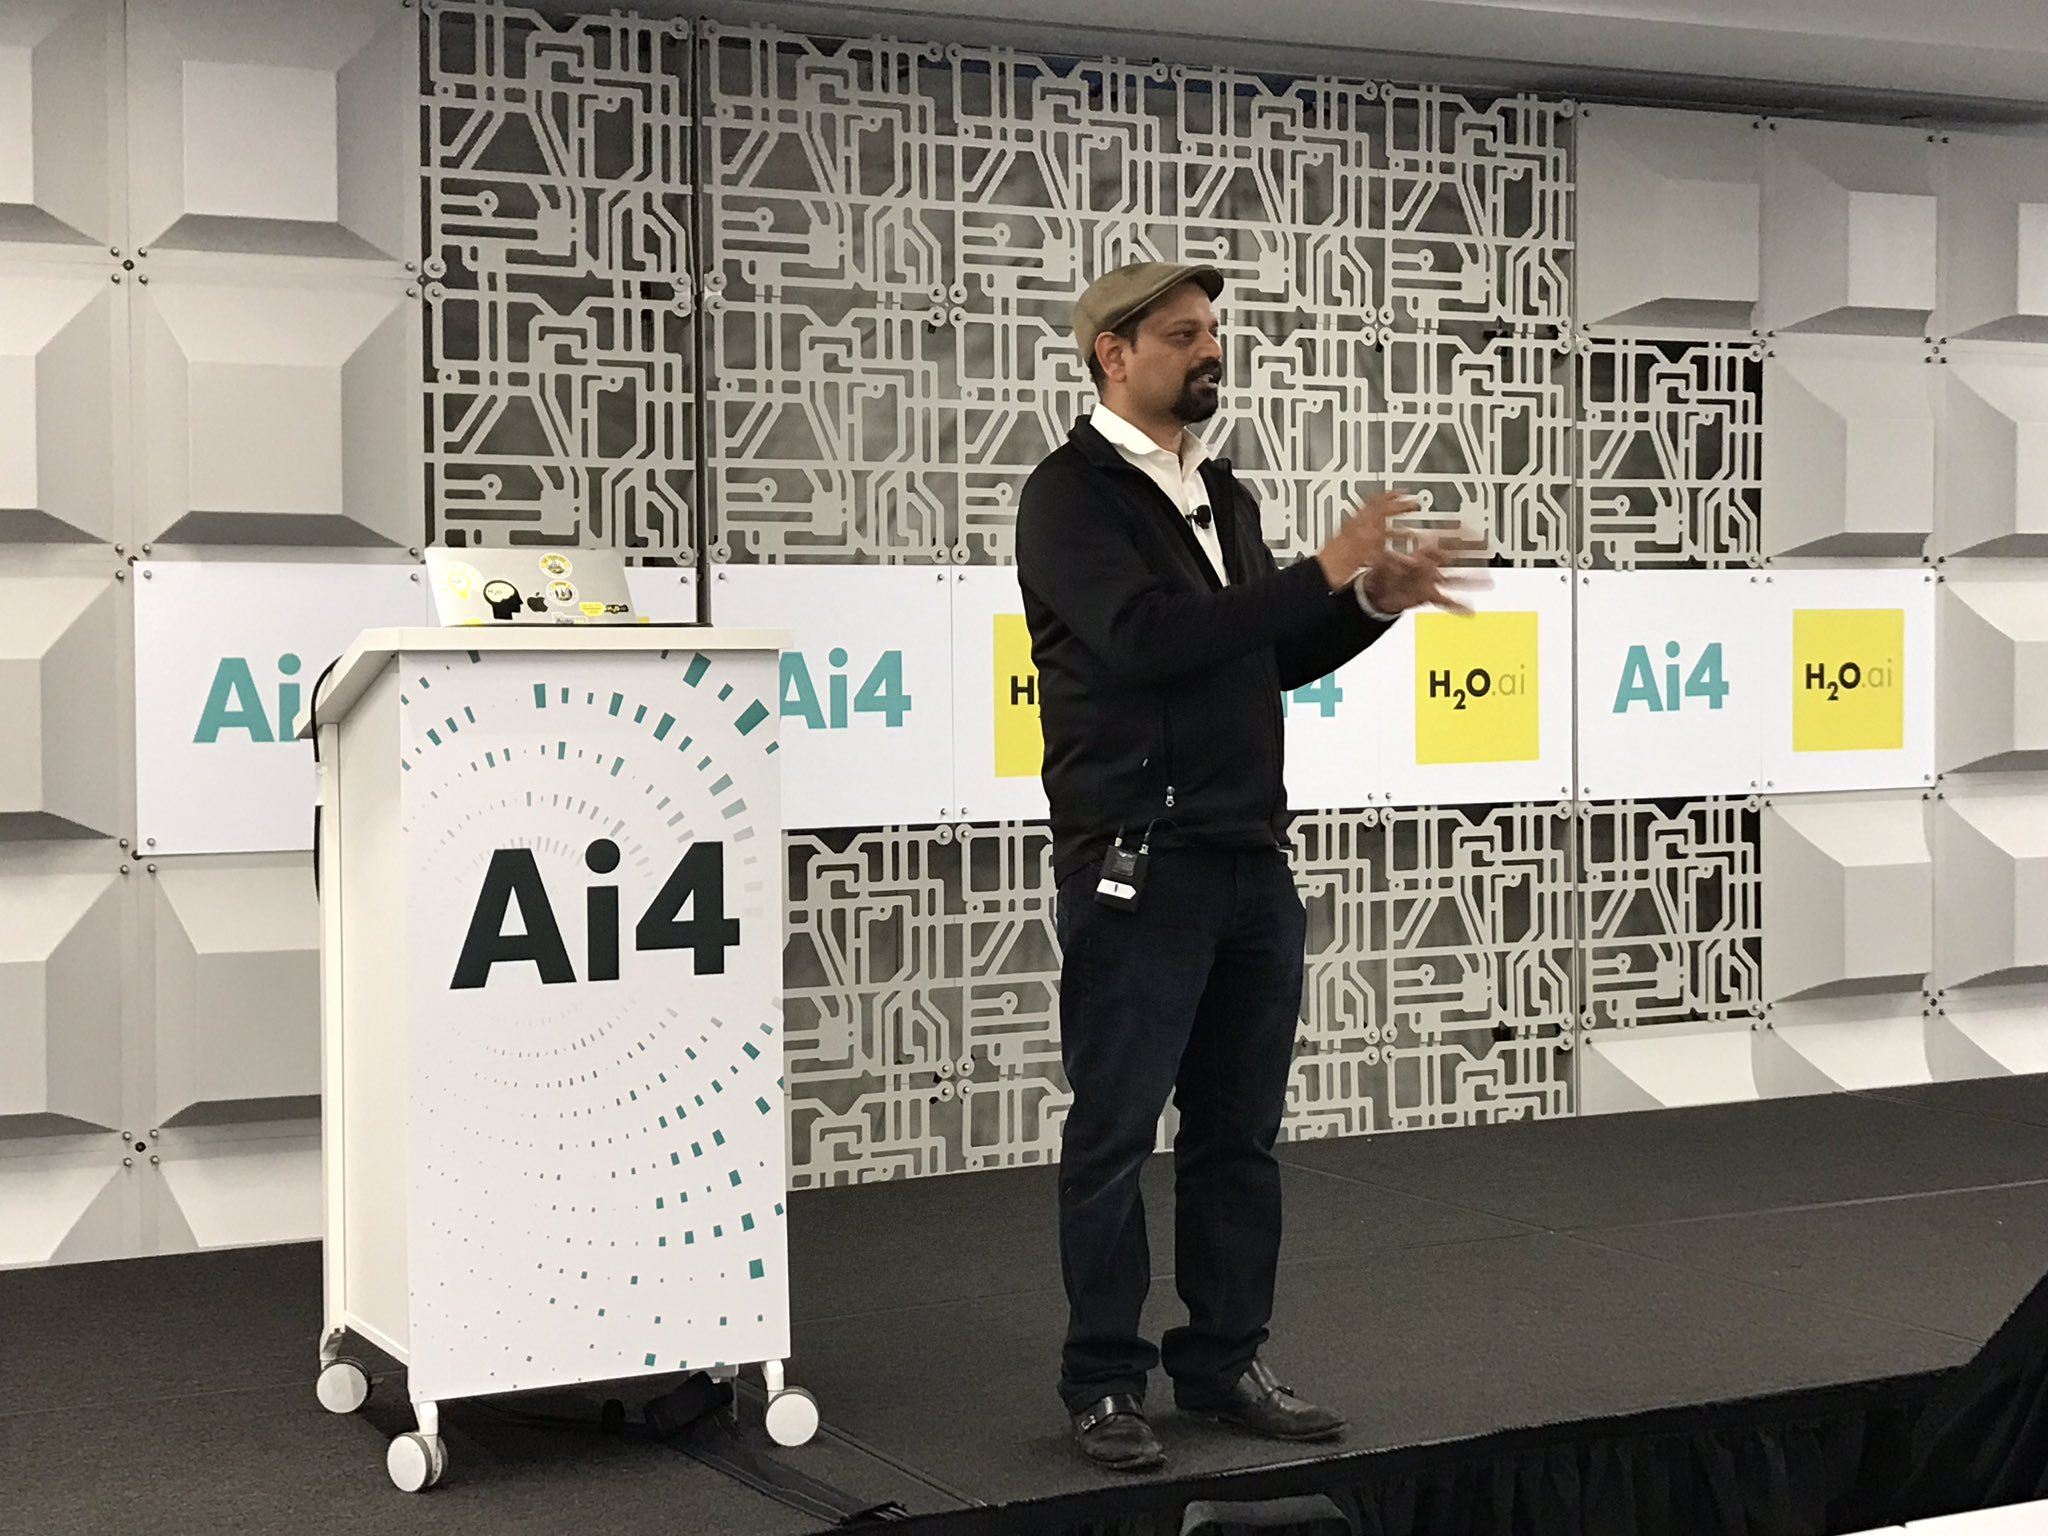 H20.ai gets $72.5M funding to bring AI to the masses